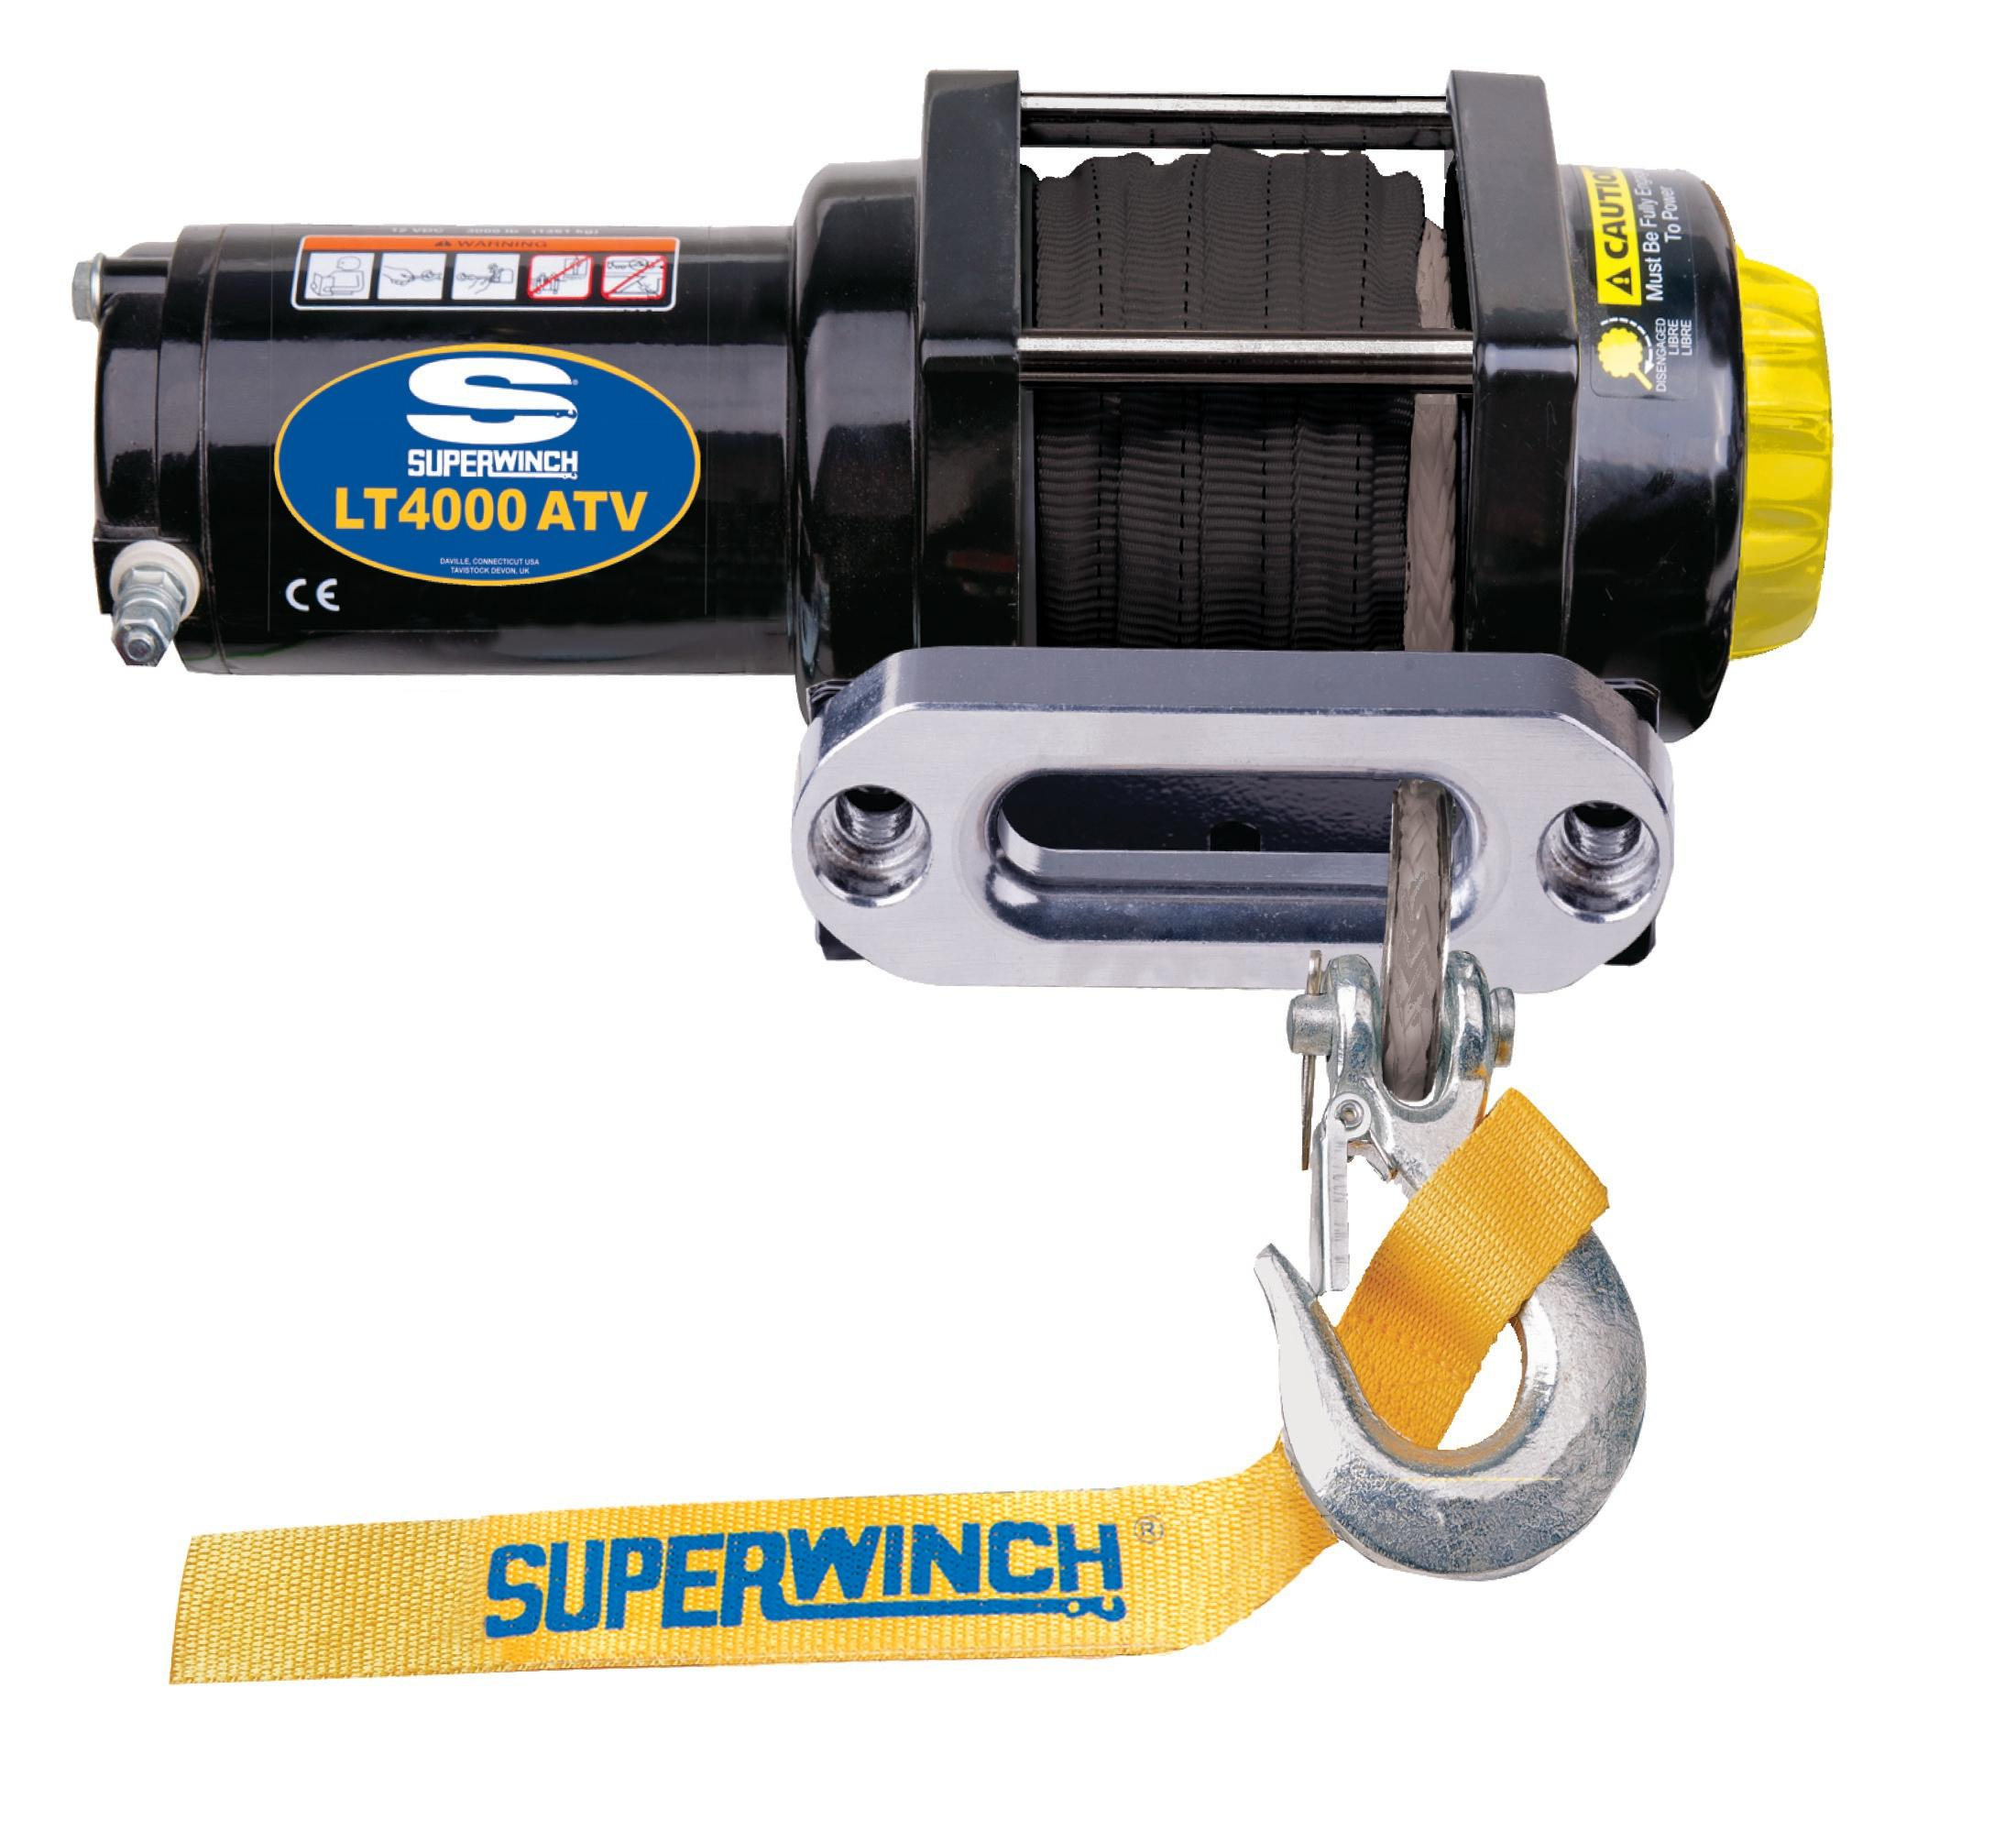 Superwinch Lt3000 Atv Winch Wiring Simple Guide About Diagram Lt4000 32